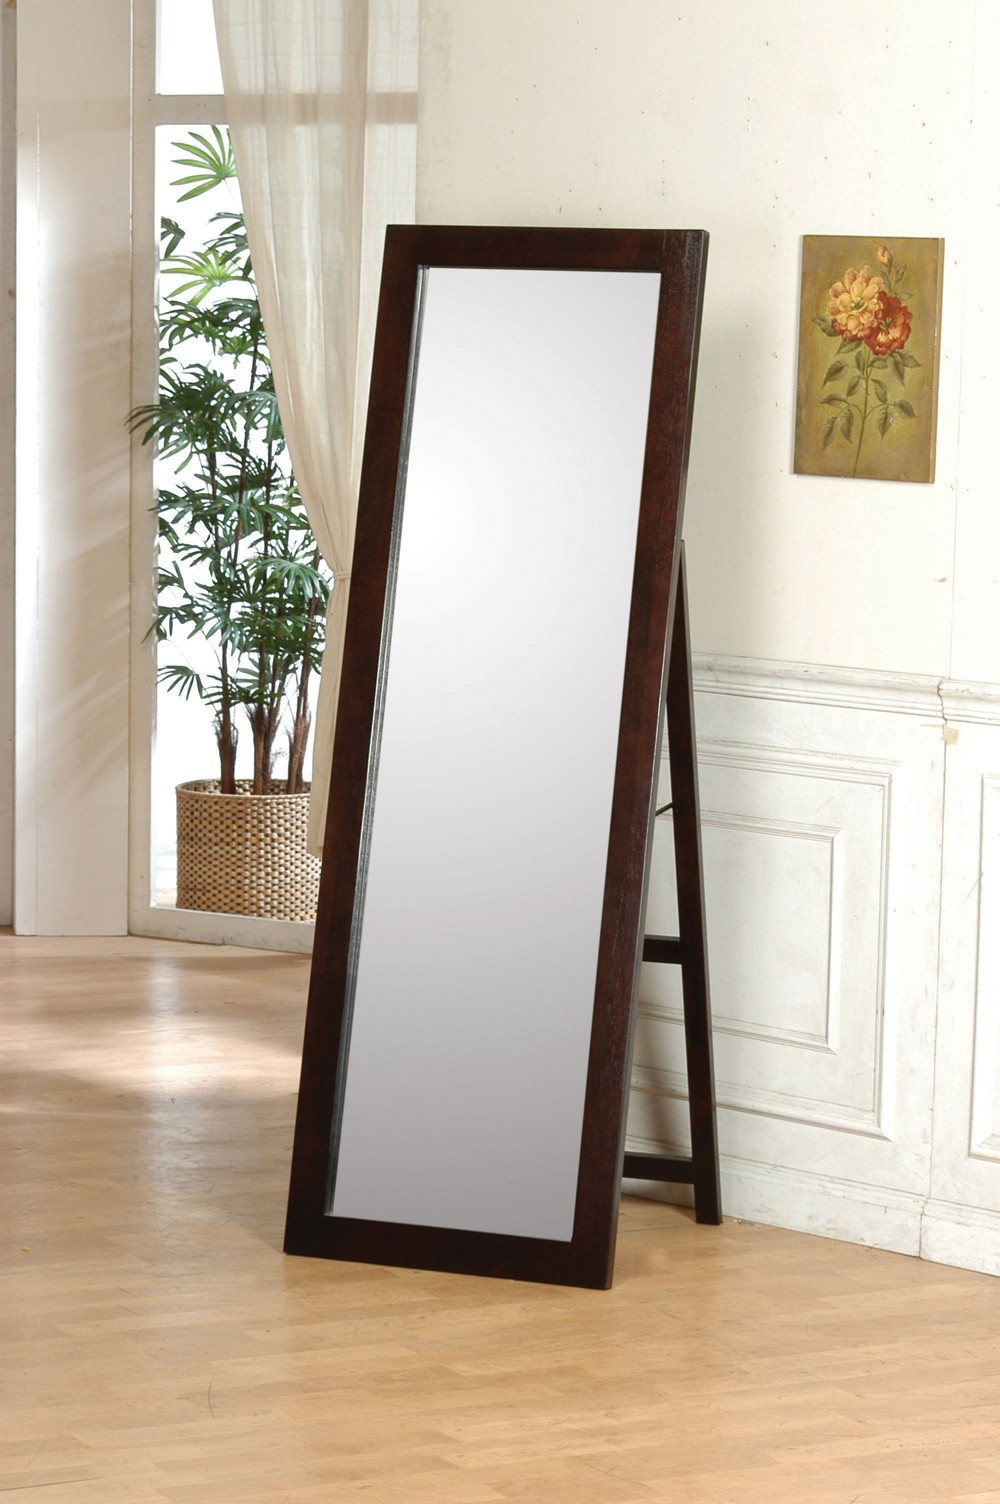 Delightful 7ft High Lean Mirror